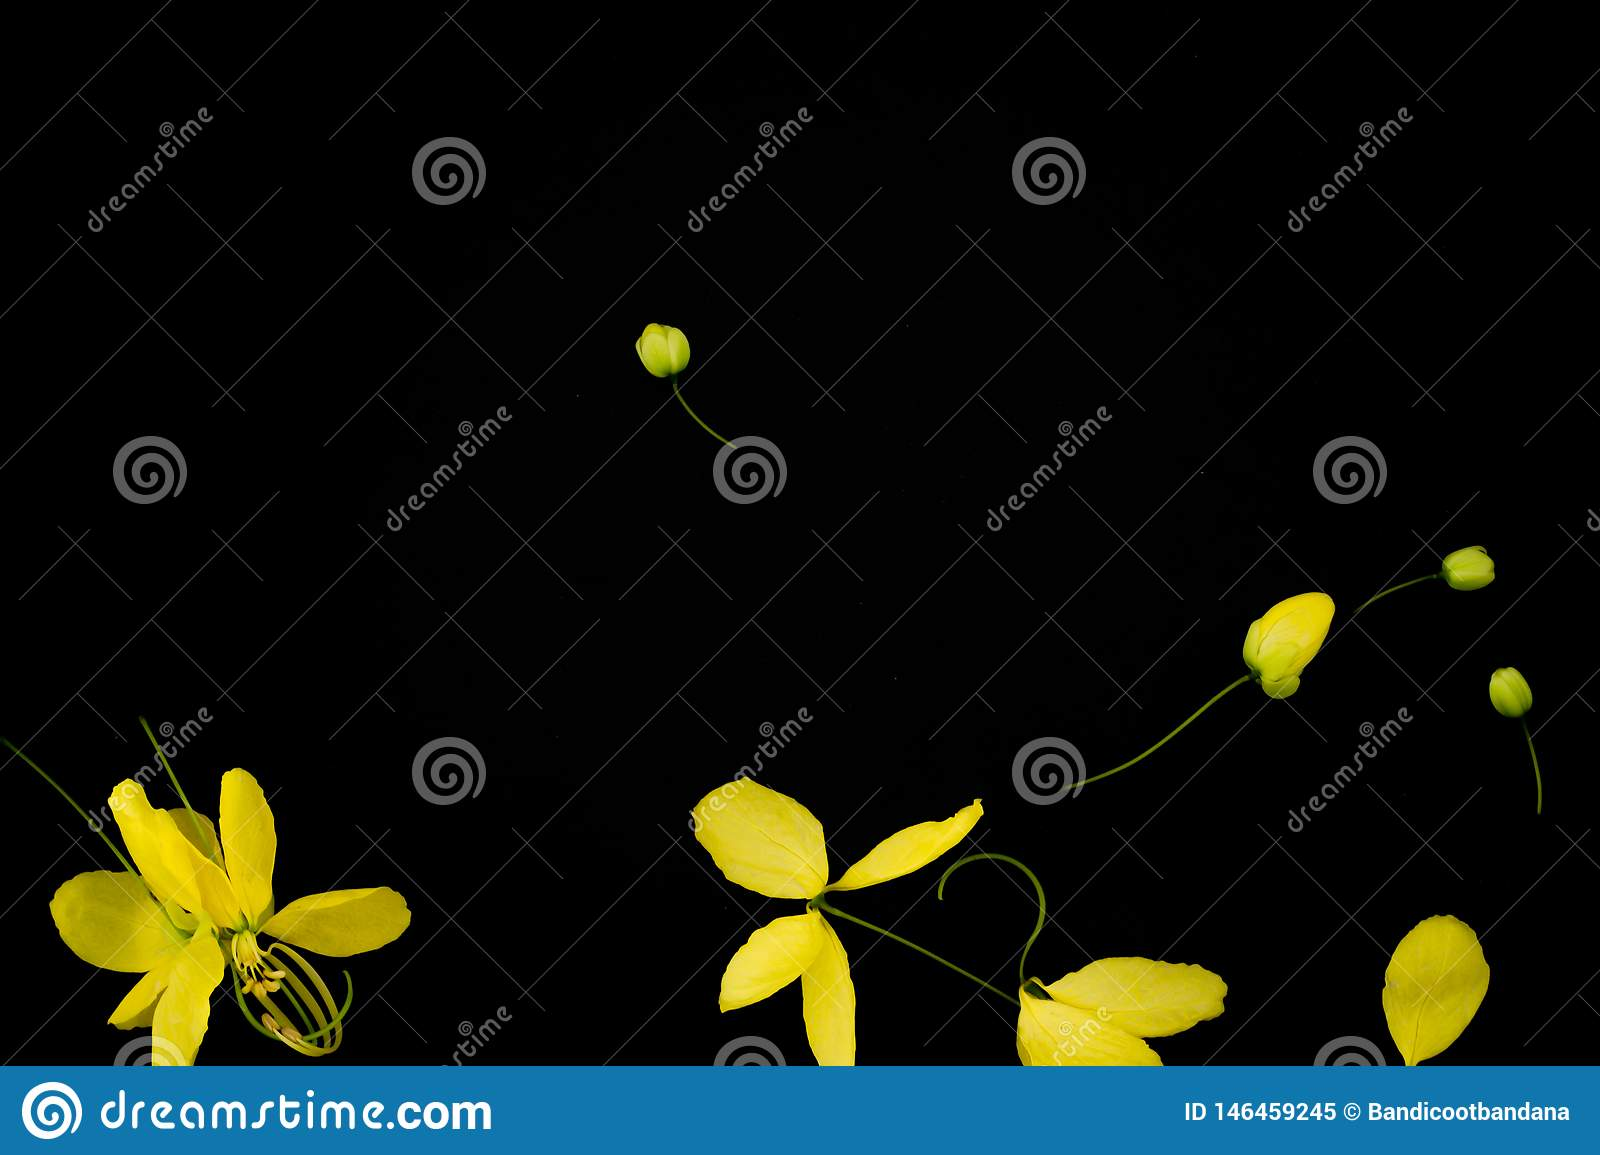 Close up nature Yellow flower black background taxture and wallpeper